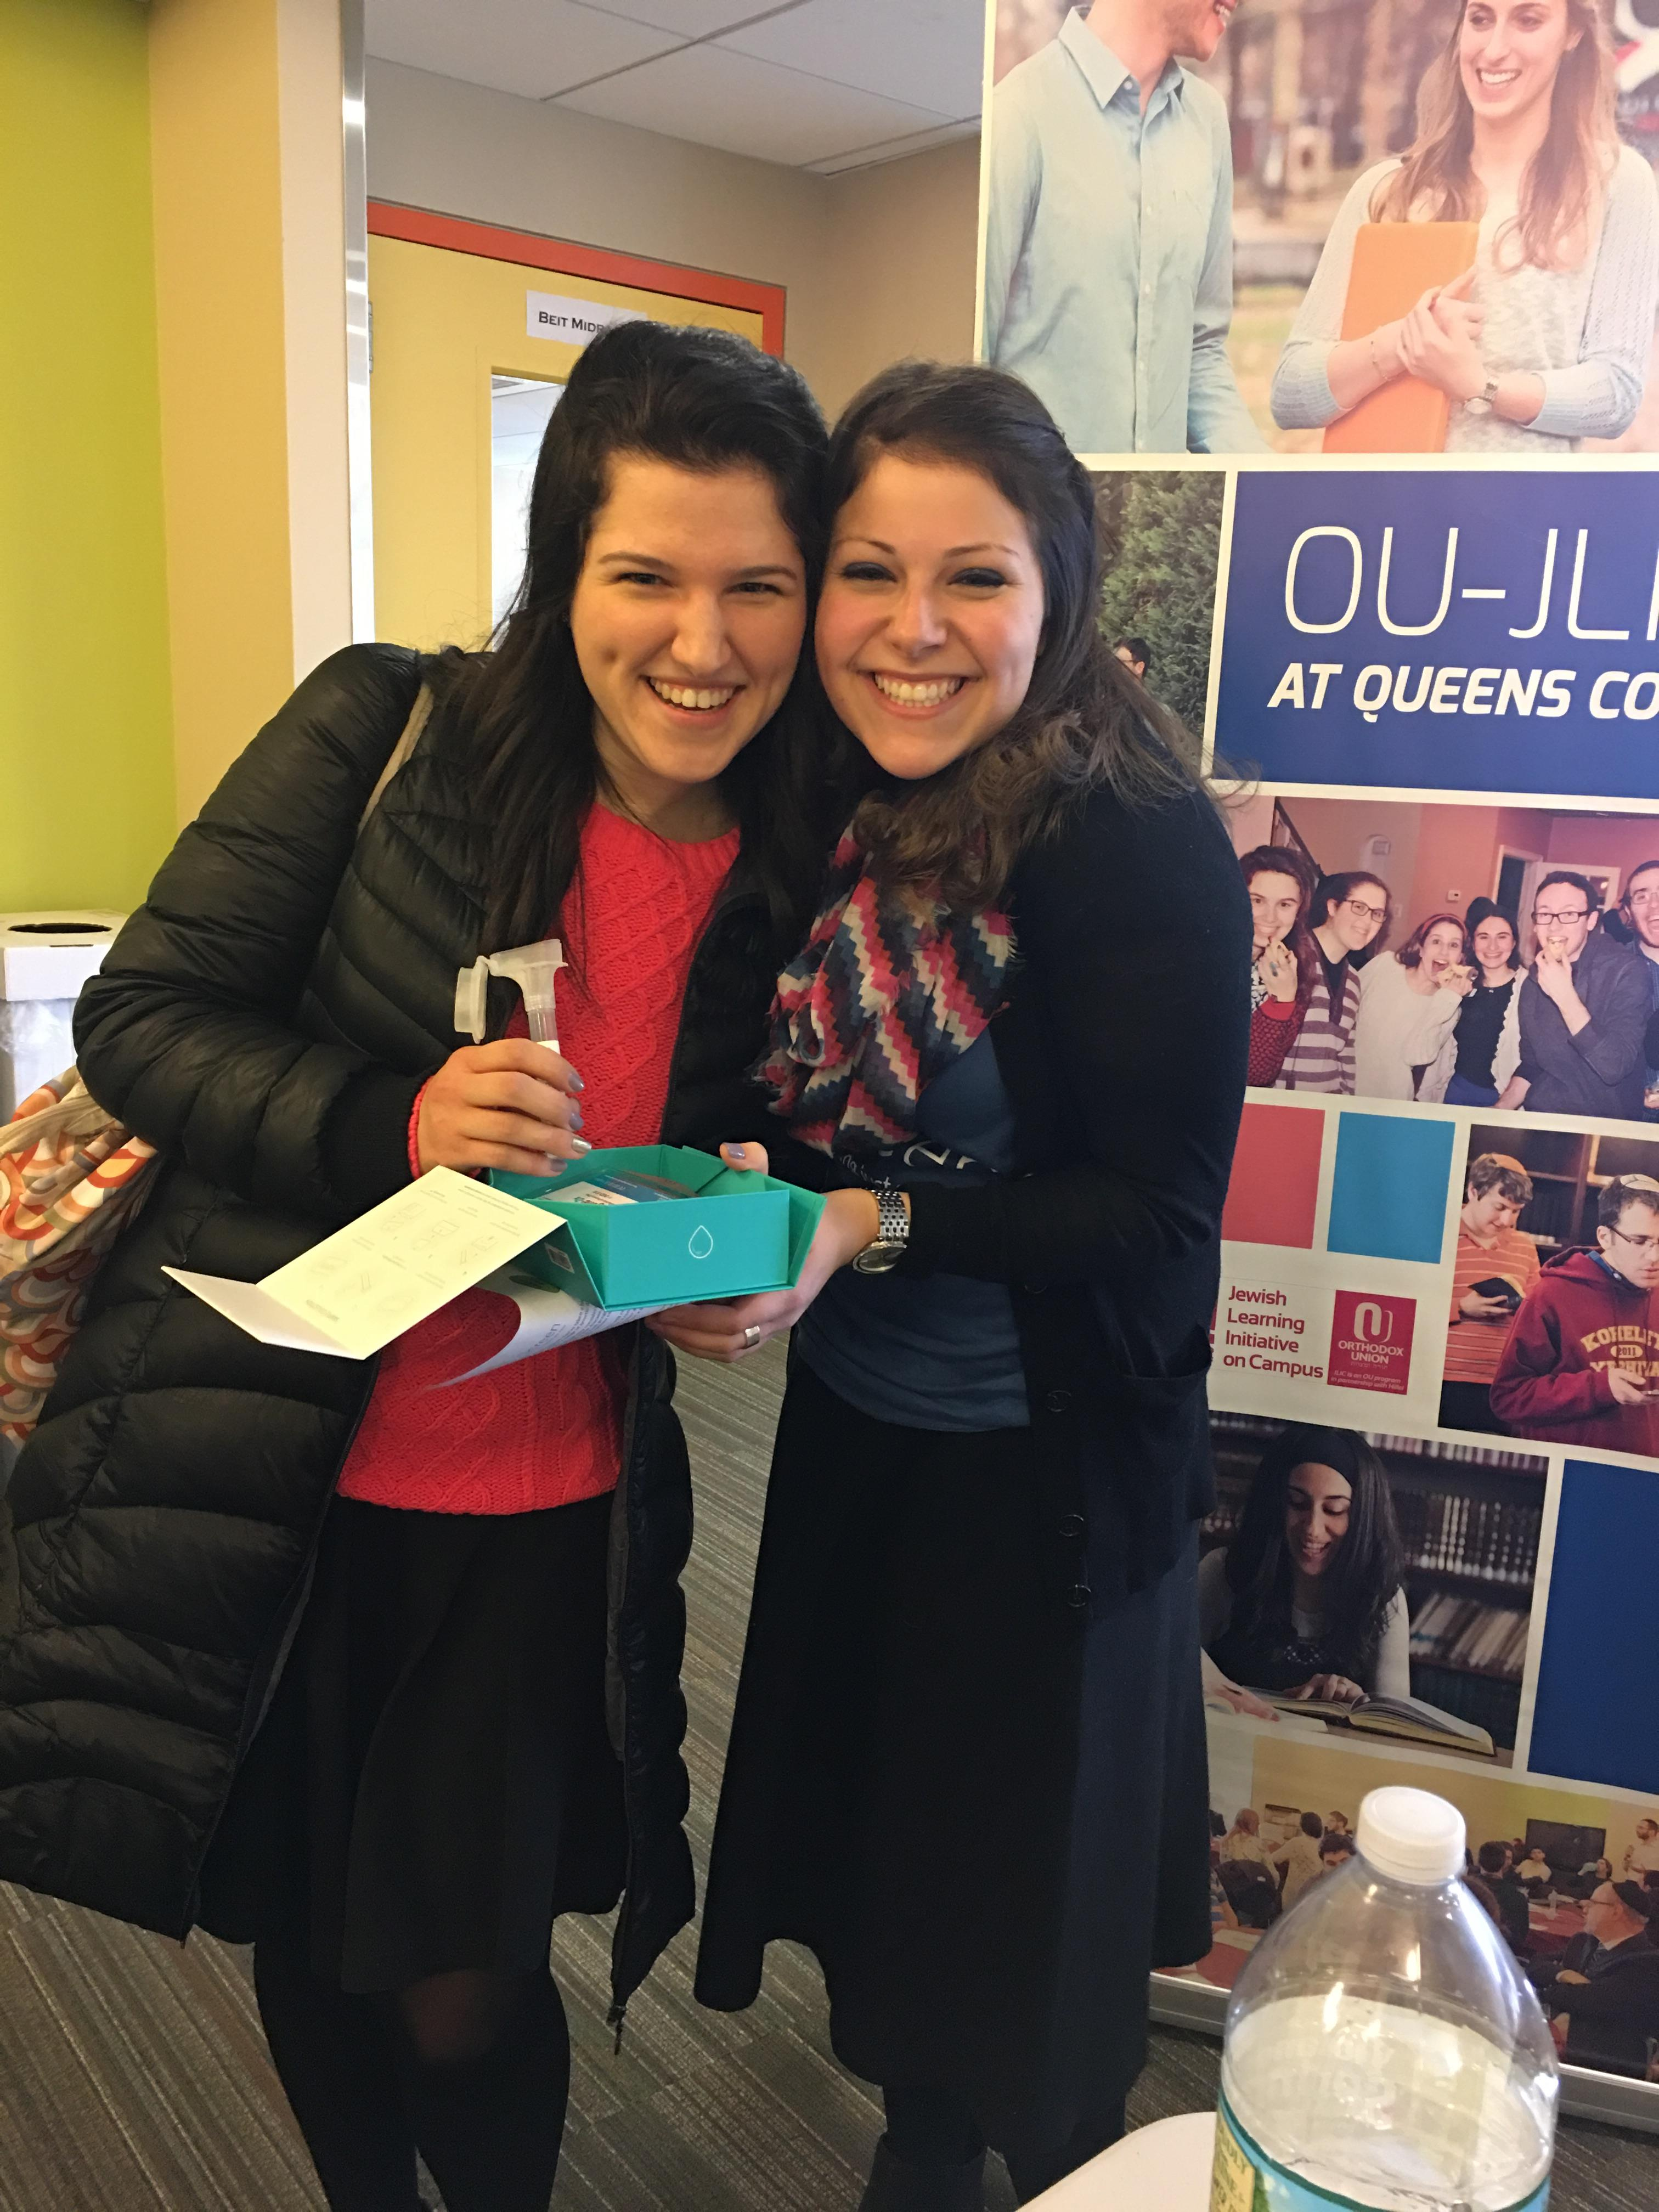 Two women with brown hair smile at the camera during a screening event at Queens College.